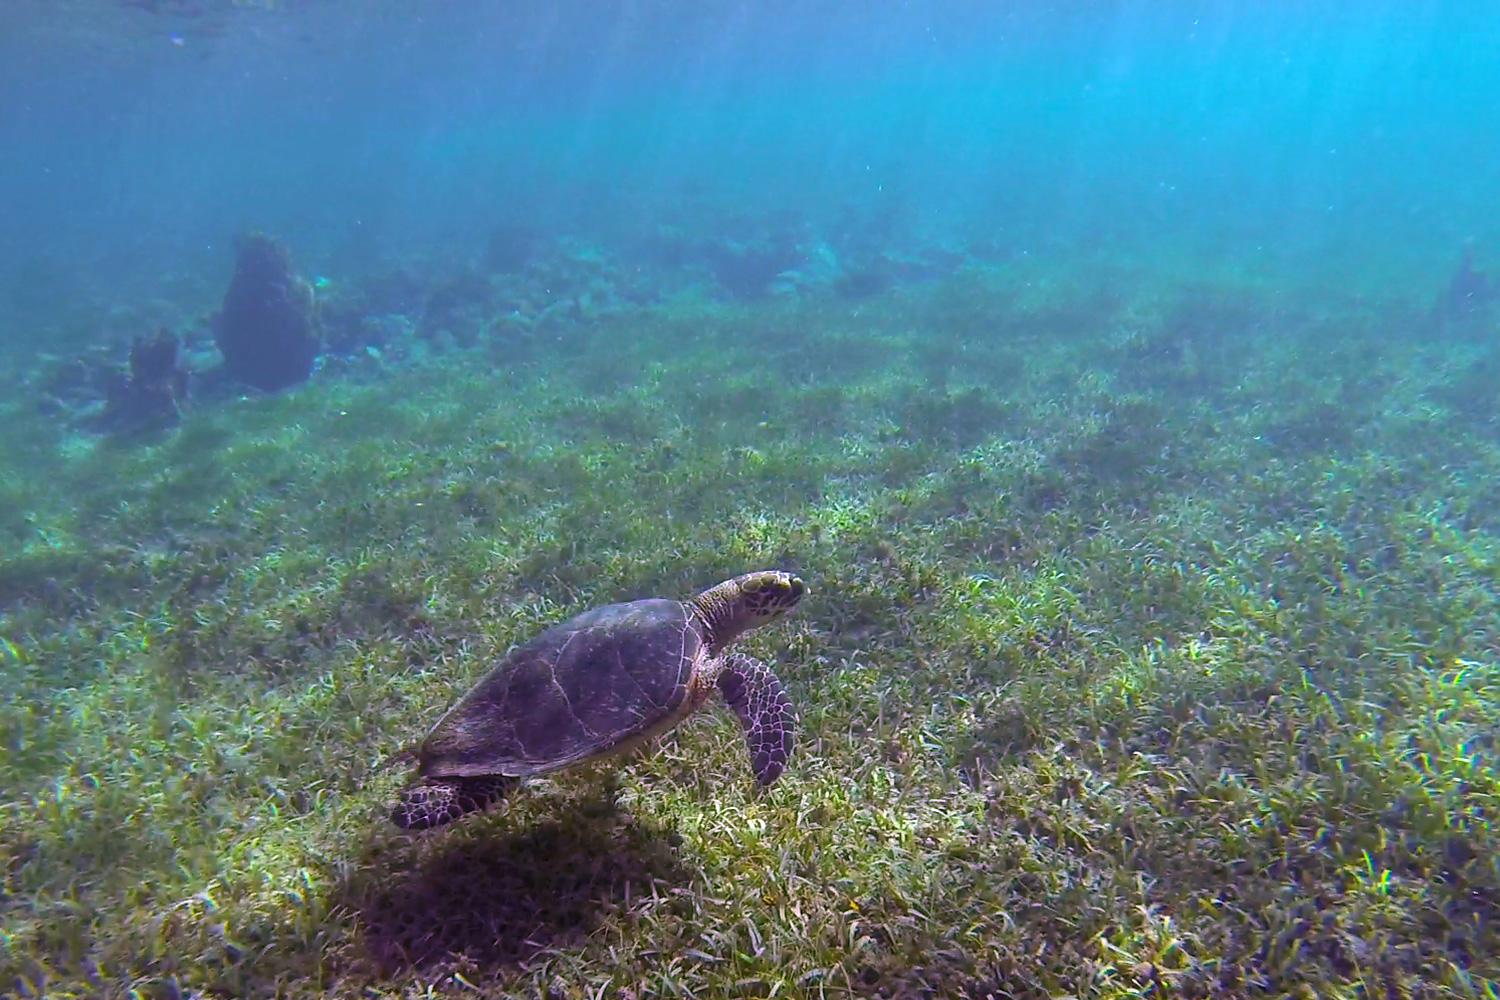 The Green Sea Turtle can be found feeding in grassy areas on the sea.